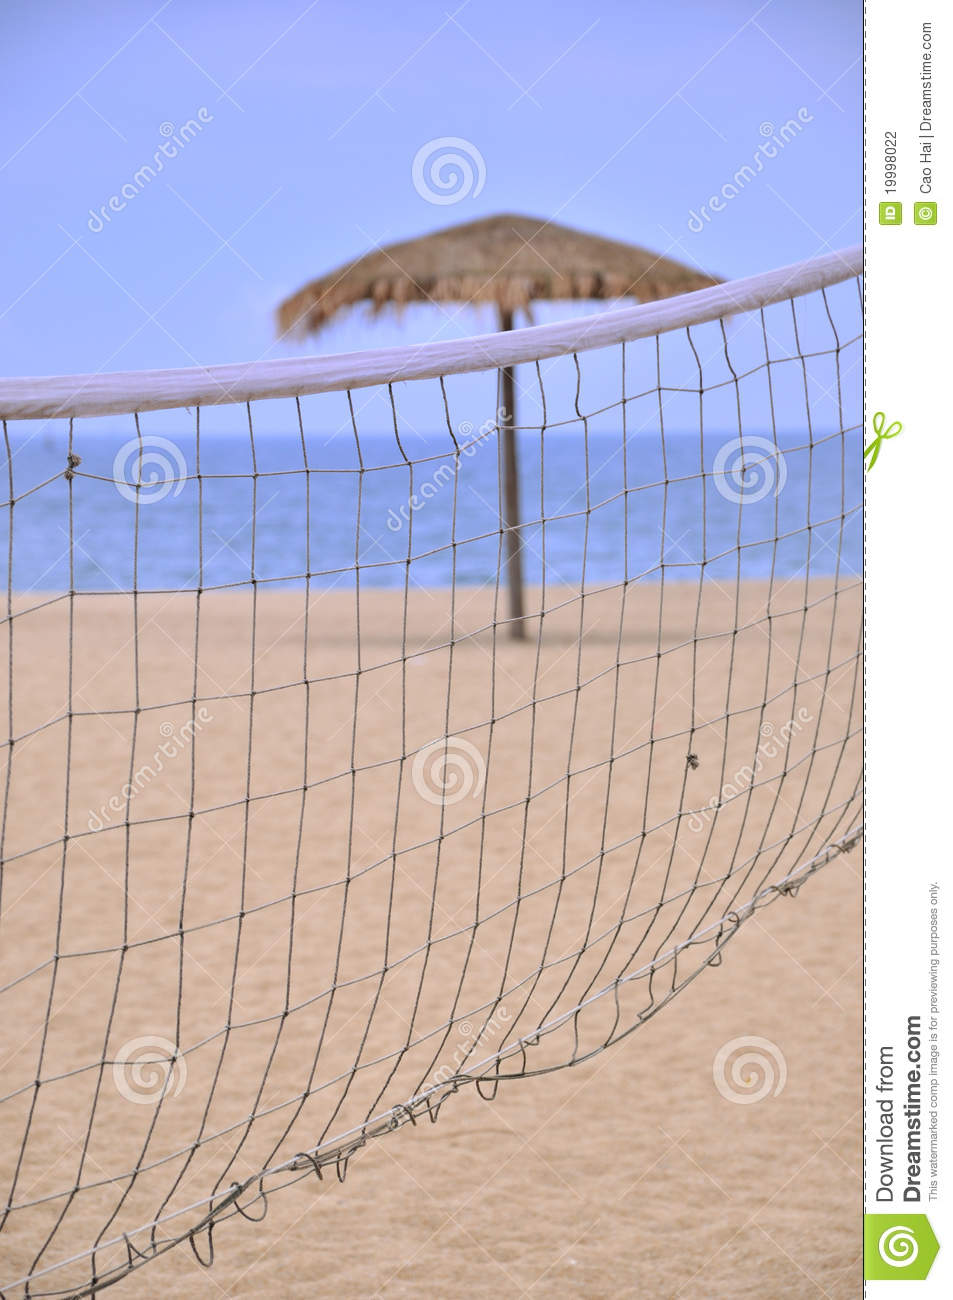 Sand volleyball business plan